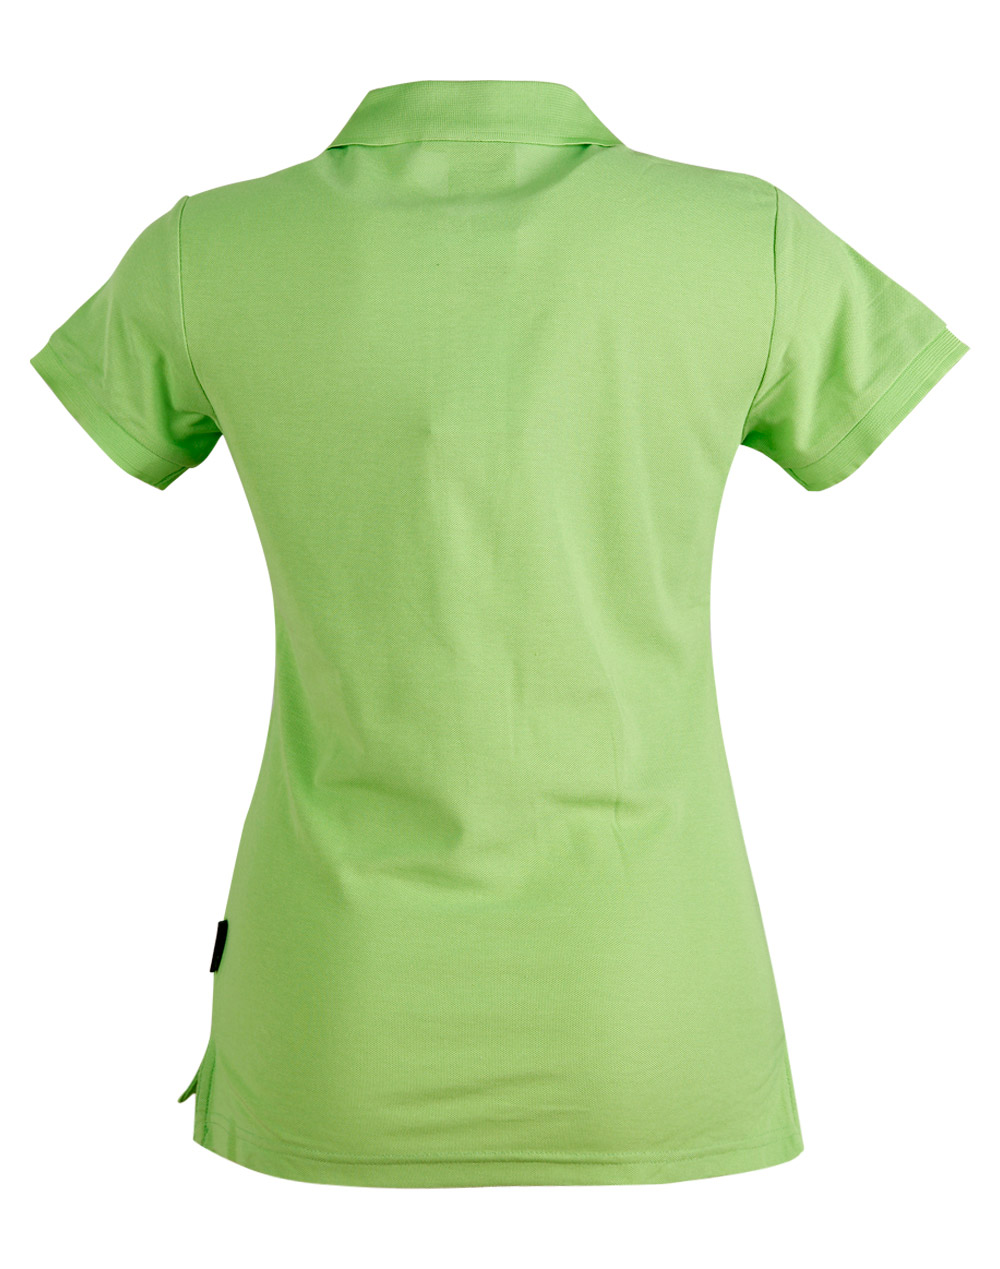 https://s3-ap-southeast-1.amazonaws.com/ws-imgs/POLOSHIRTS/PS64_AppleGreen_Back.jpg